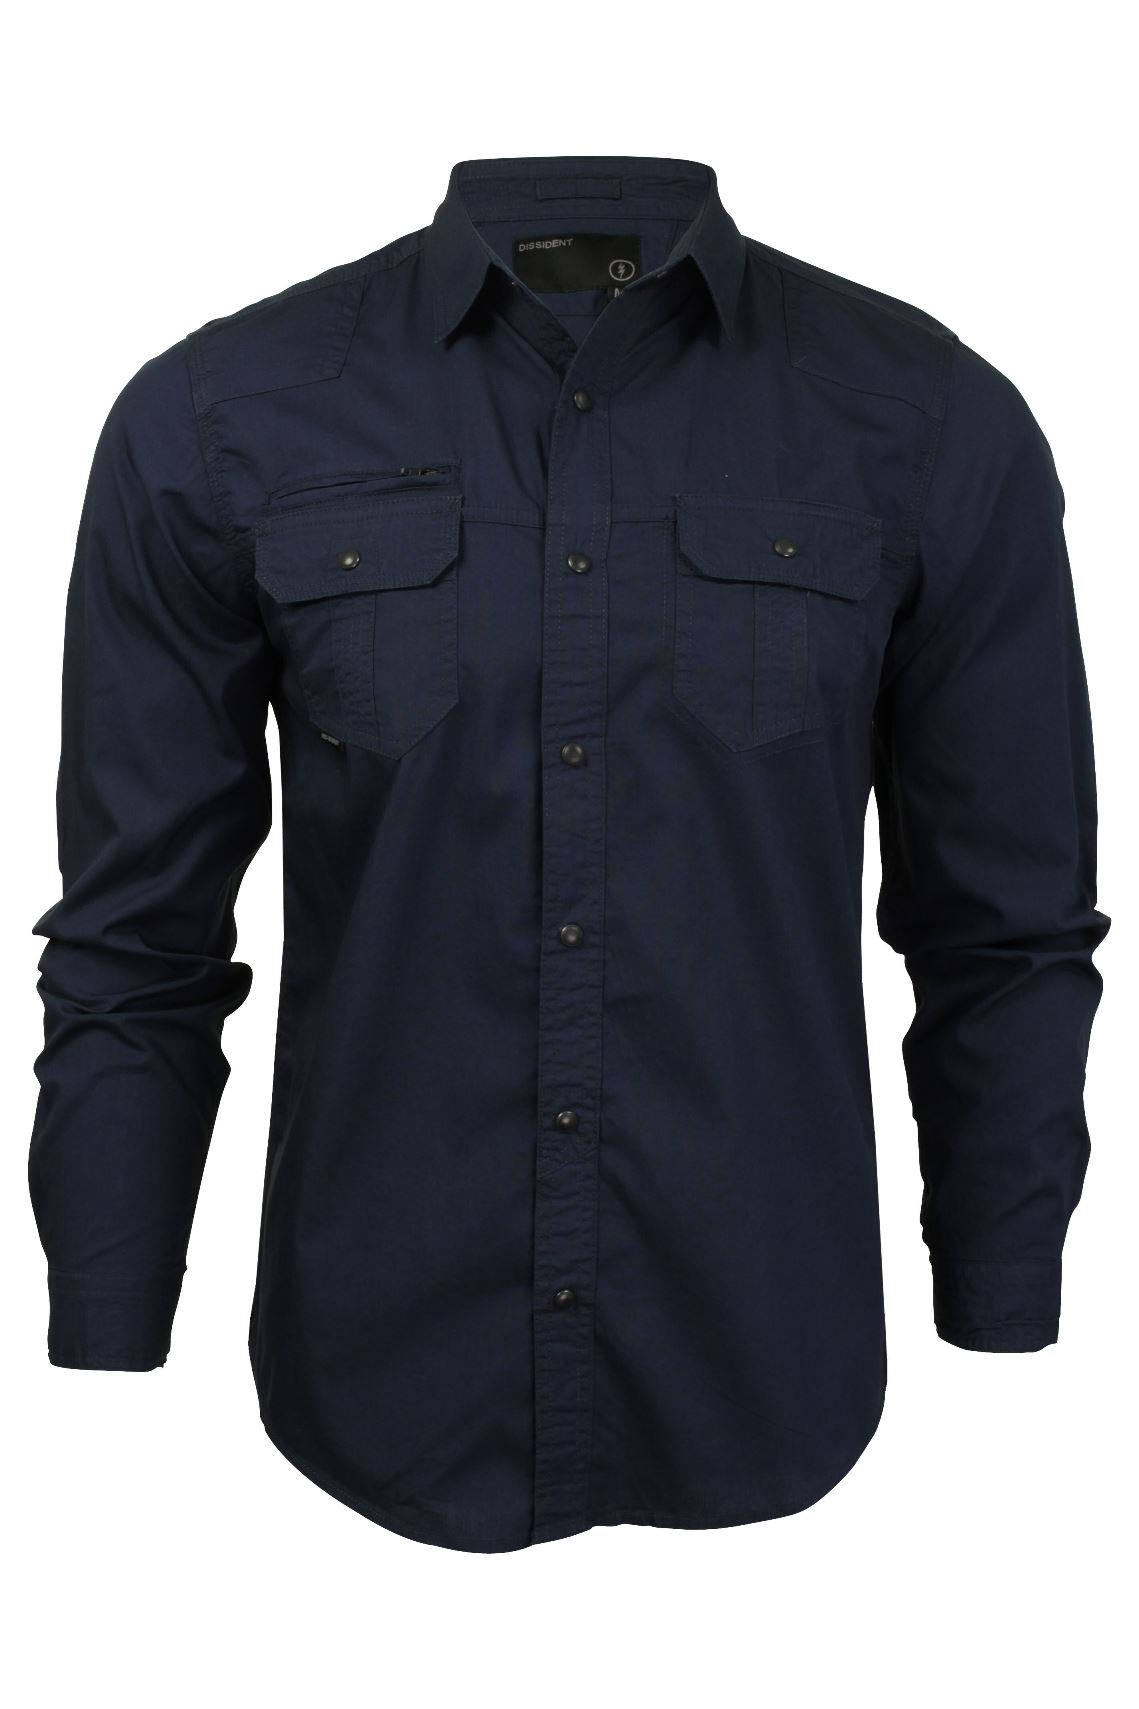 Mens Shirt by Dissident 'Bismarck' Long Sleeved-Main Image